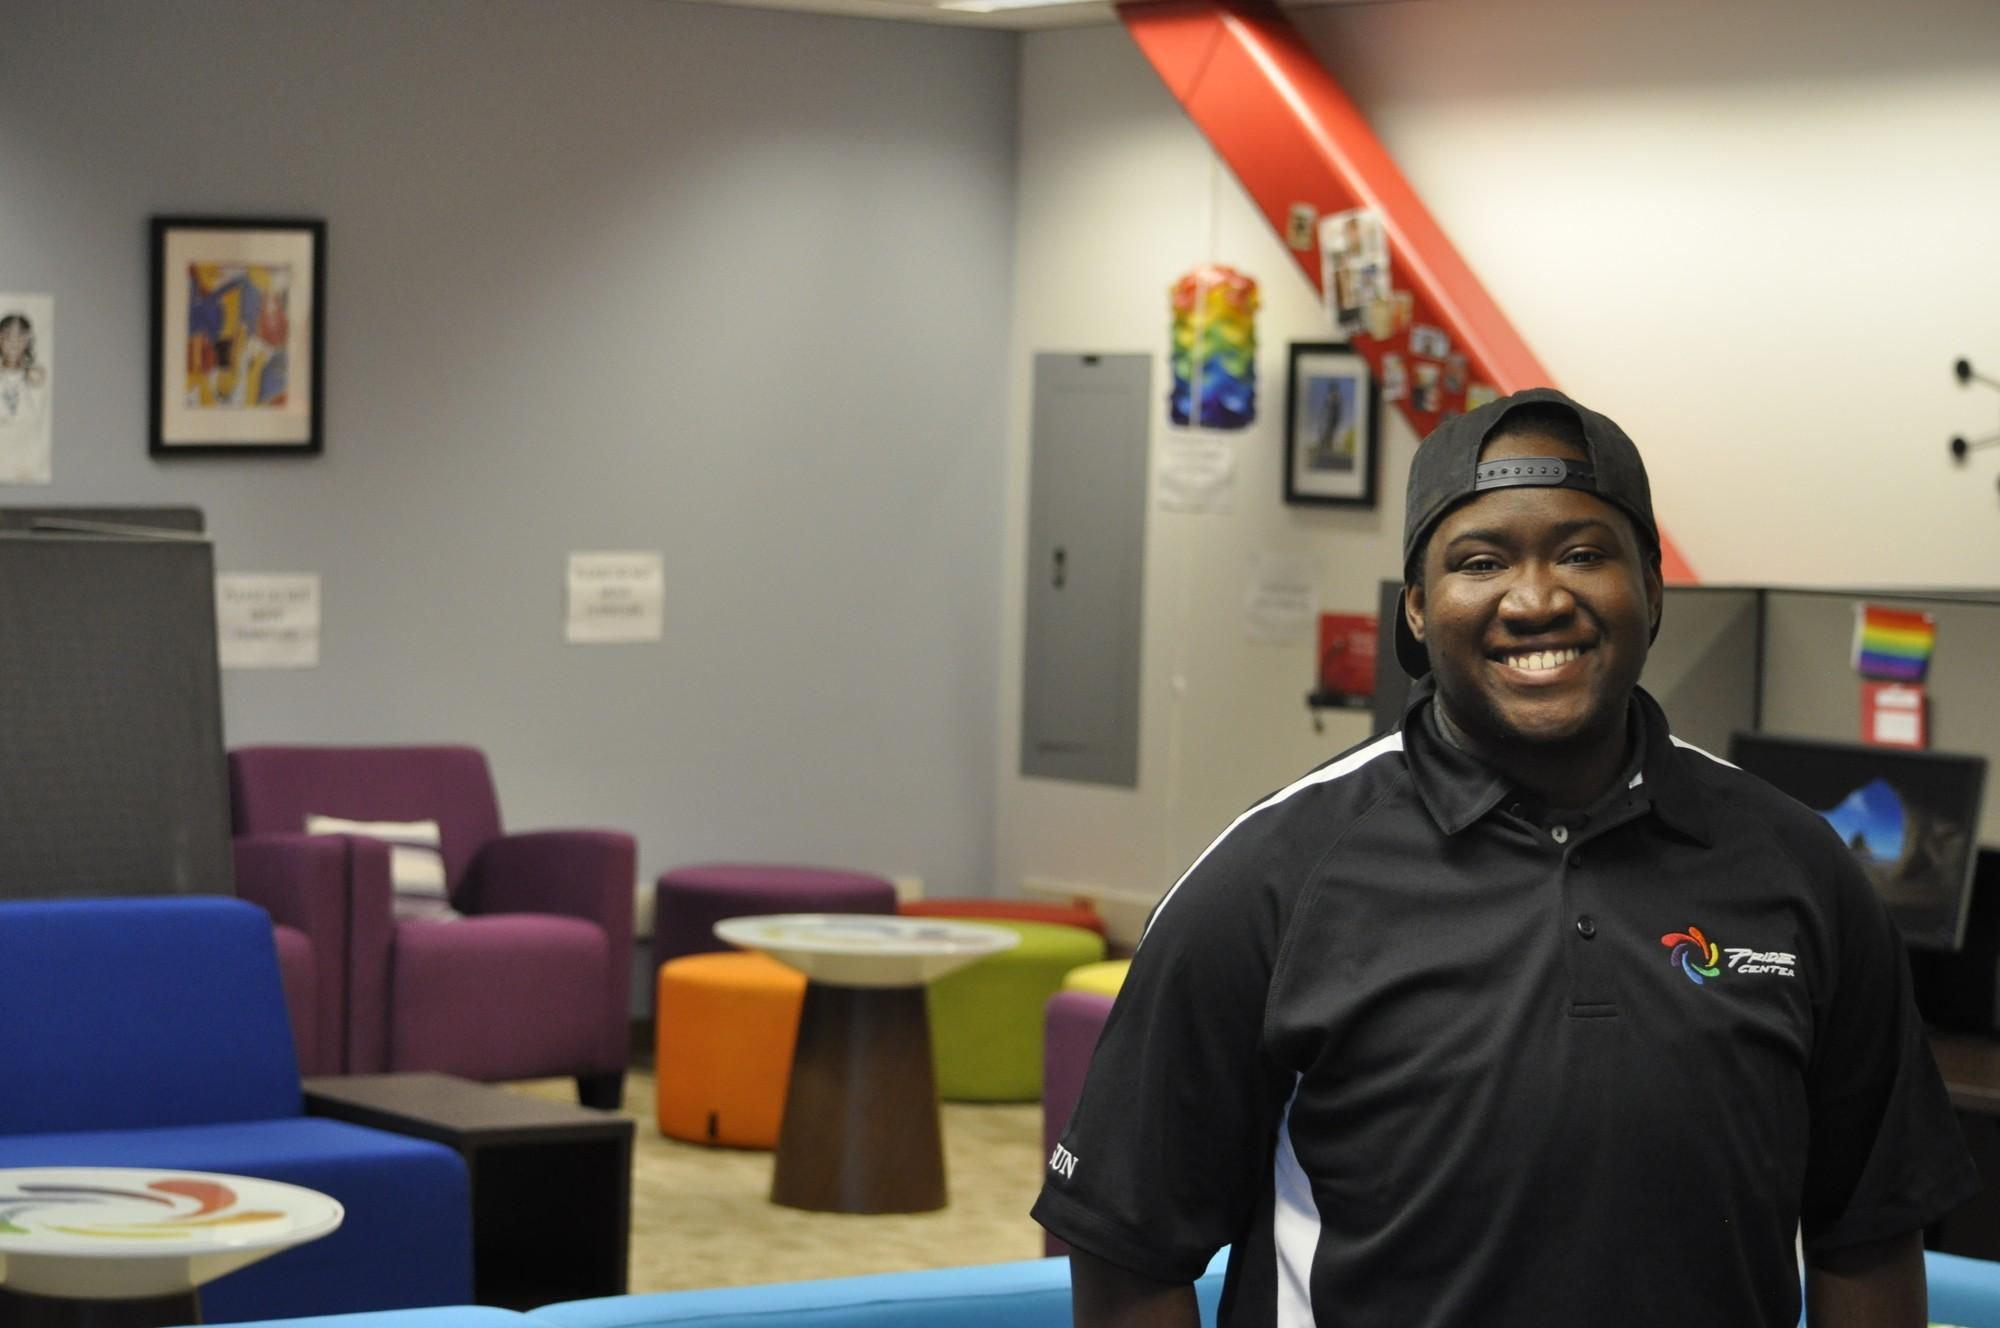 Tyler Neroes pictured standing in the pride center, smiling